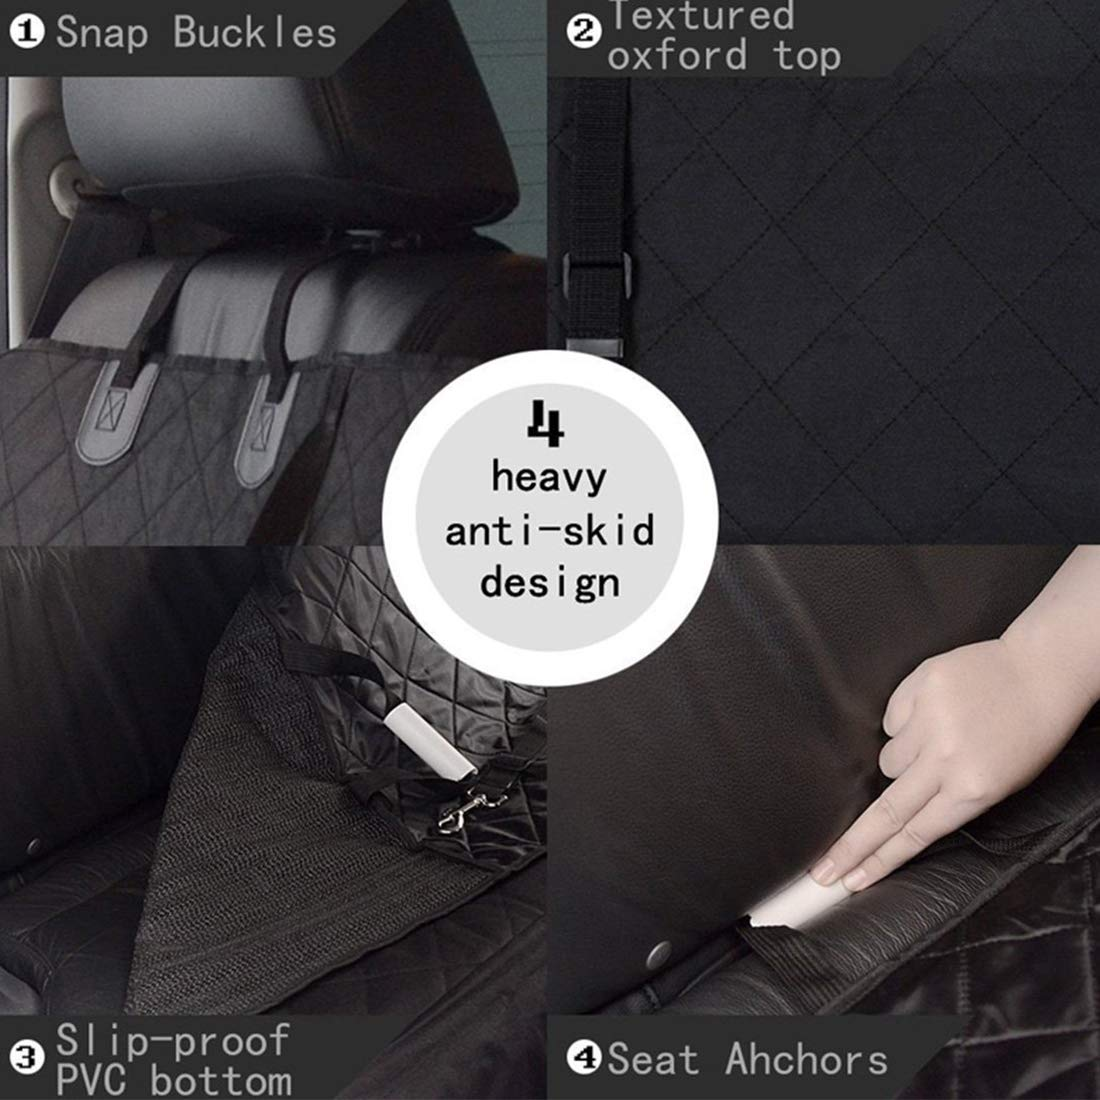 Dog Car Seat Cover 2 in 1 Nonslip Scratch-proof Pets Seat Car Cover Non-Slip Waterproof Pets Travel Hammock Rear Seat Protector single front pet seat cover 105*50cm/41.33*19.68in for cars-Black